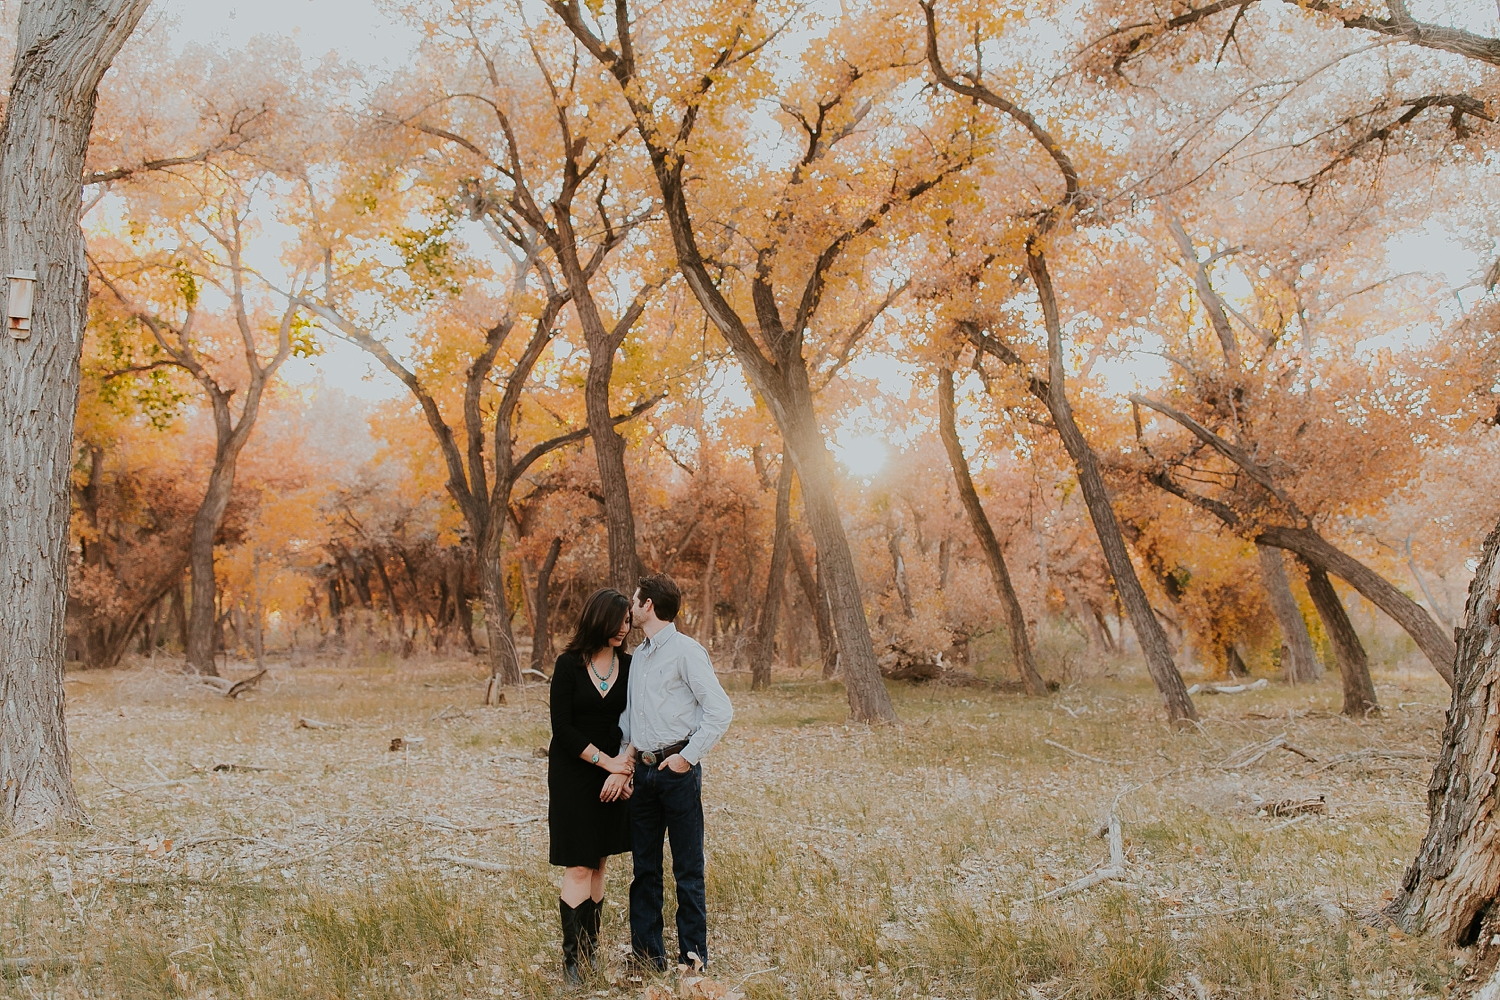 Alicia+lucia+photography+-+albuquerque+wedding+photographer+-+santa+fe+wedding+photography+-+new+mexico+wedding+photographer+-+new+mexico+engagement+photographer+-+southwest+engagement+photography_0015.jpg